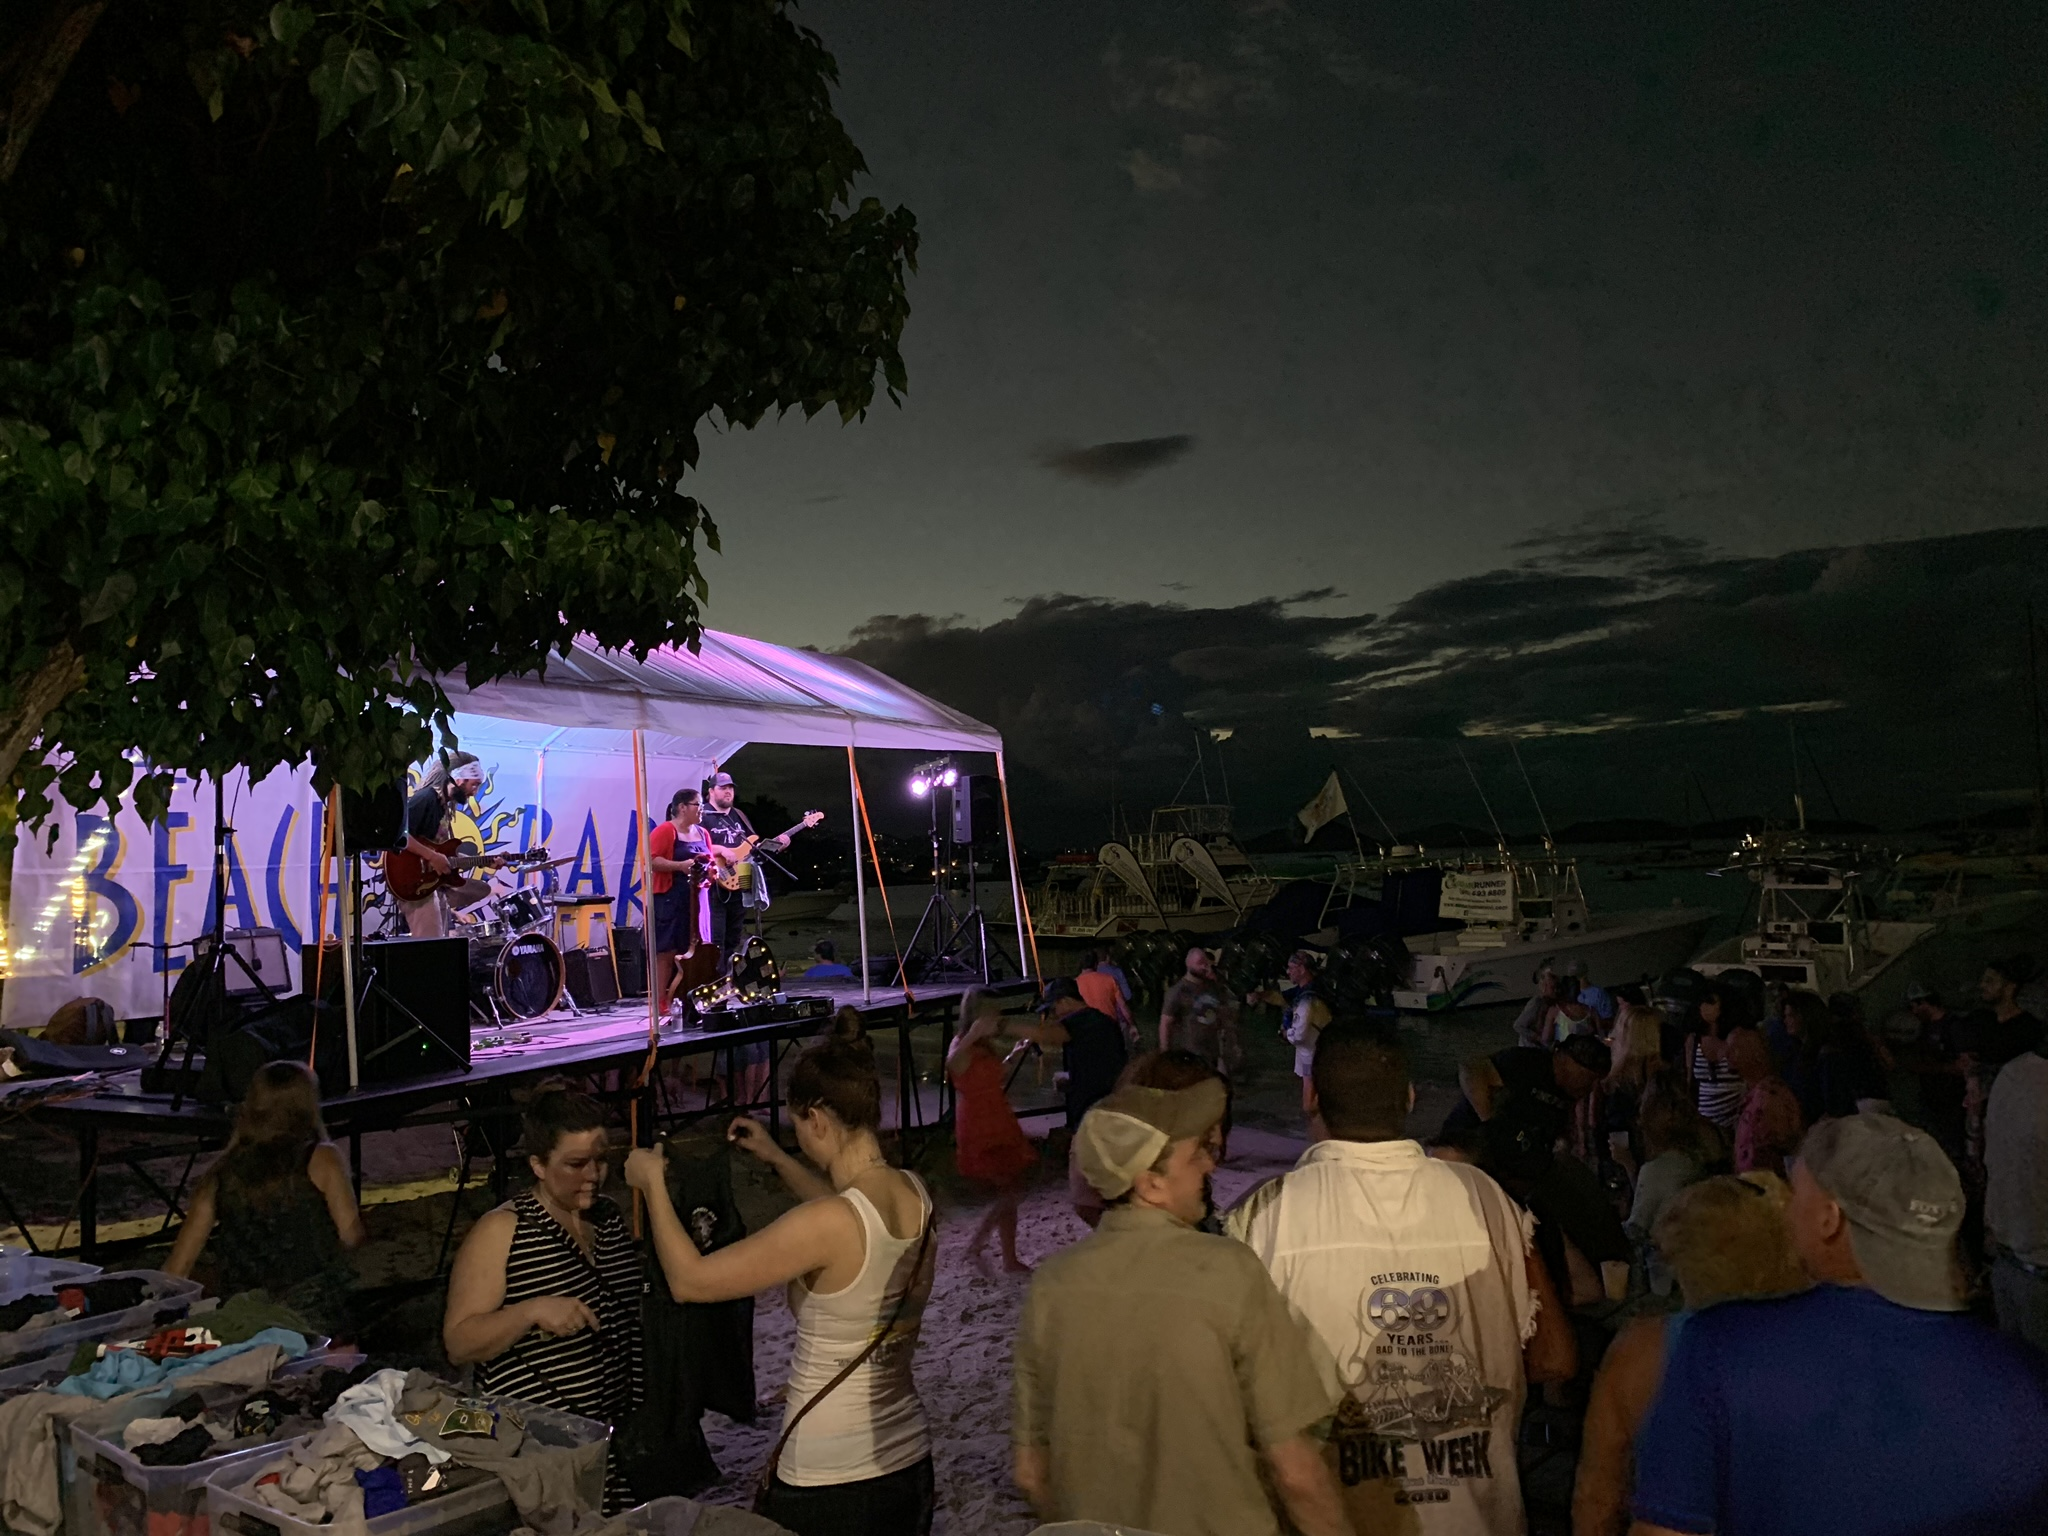 Music played under the tent at night